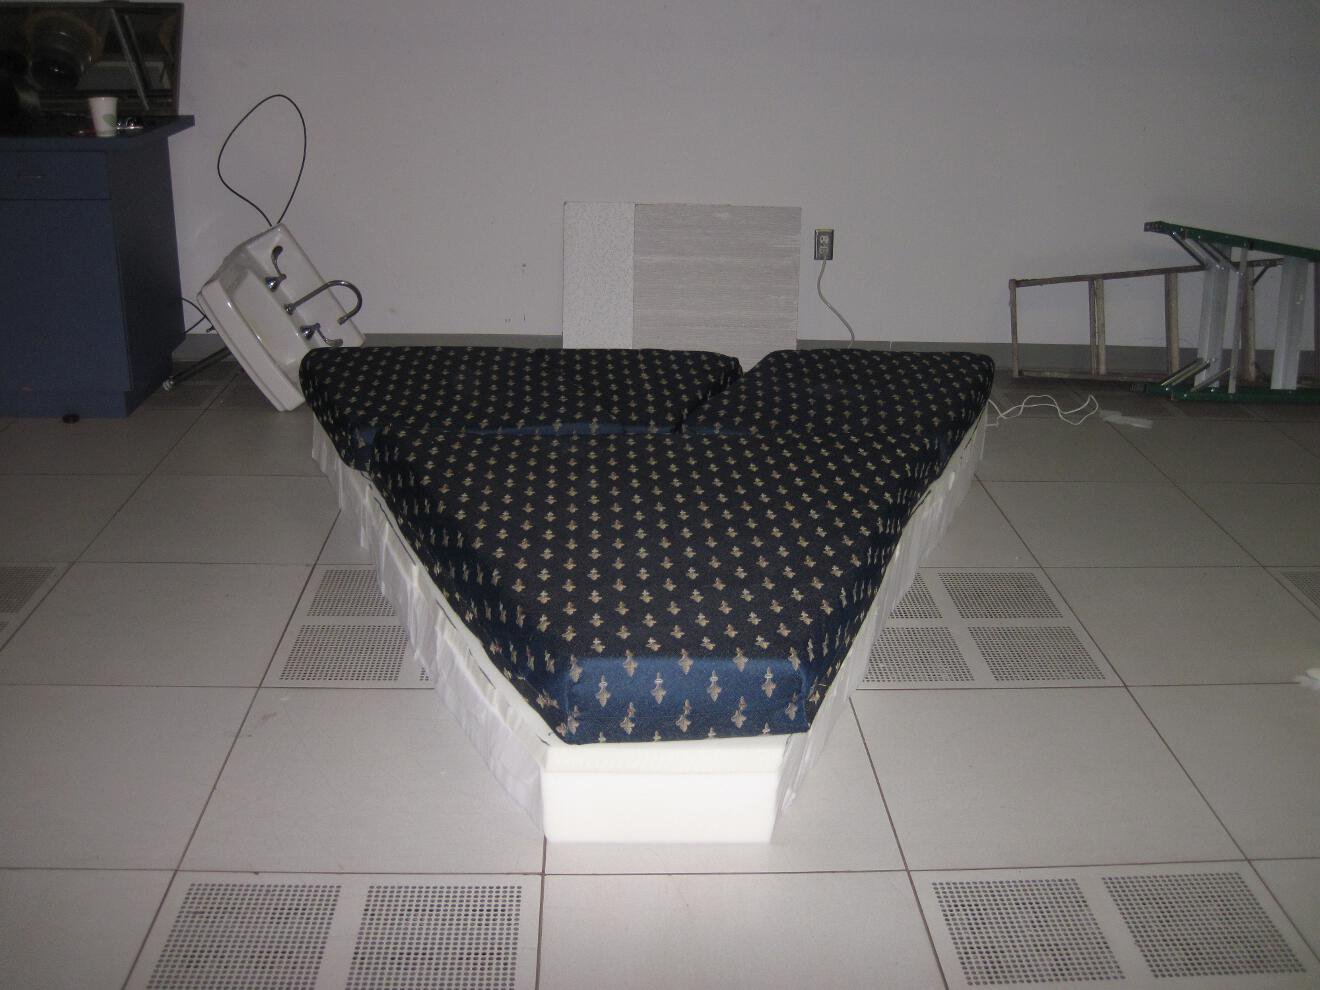 any recommendations for replacing mattresses in owner s berth